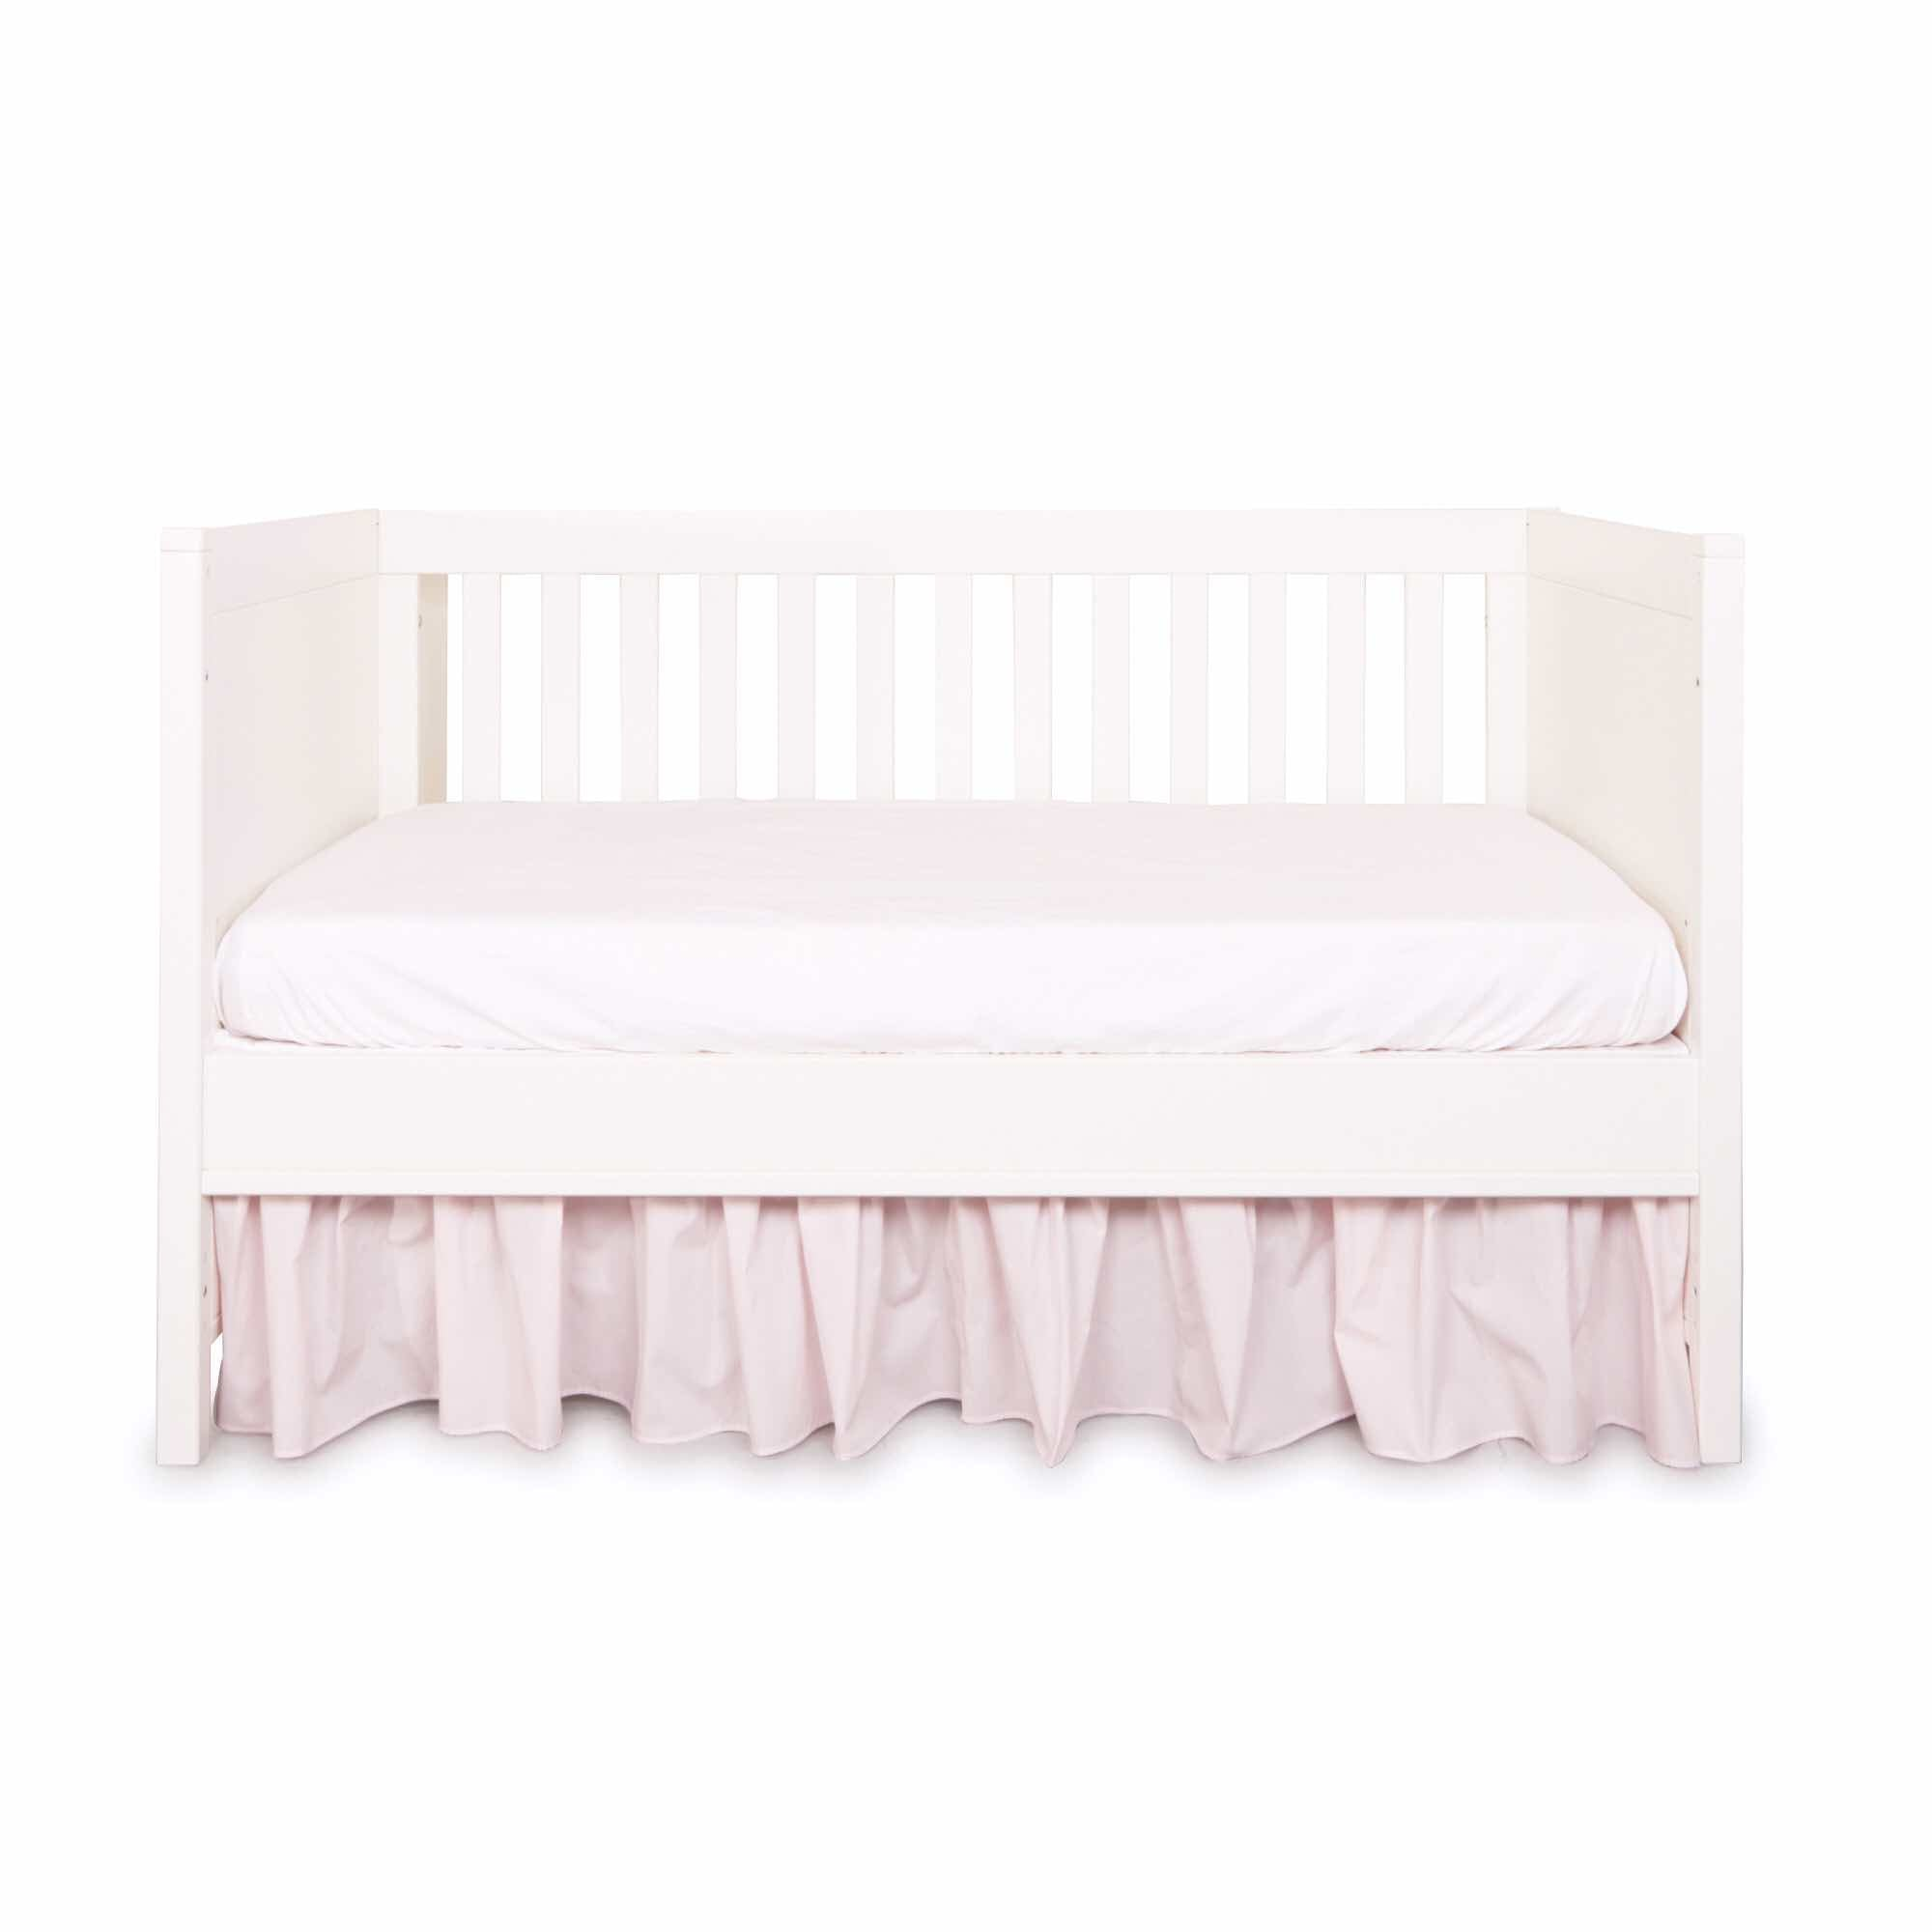 Theophile & Patachou Bed Skirt 60cm - Royal Pink